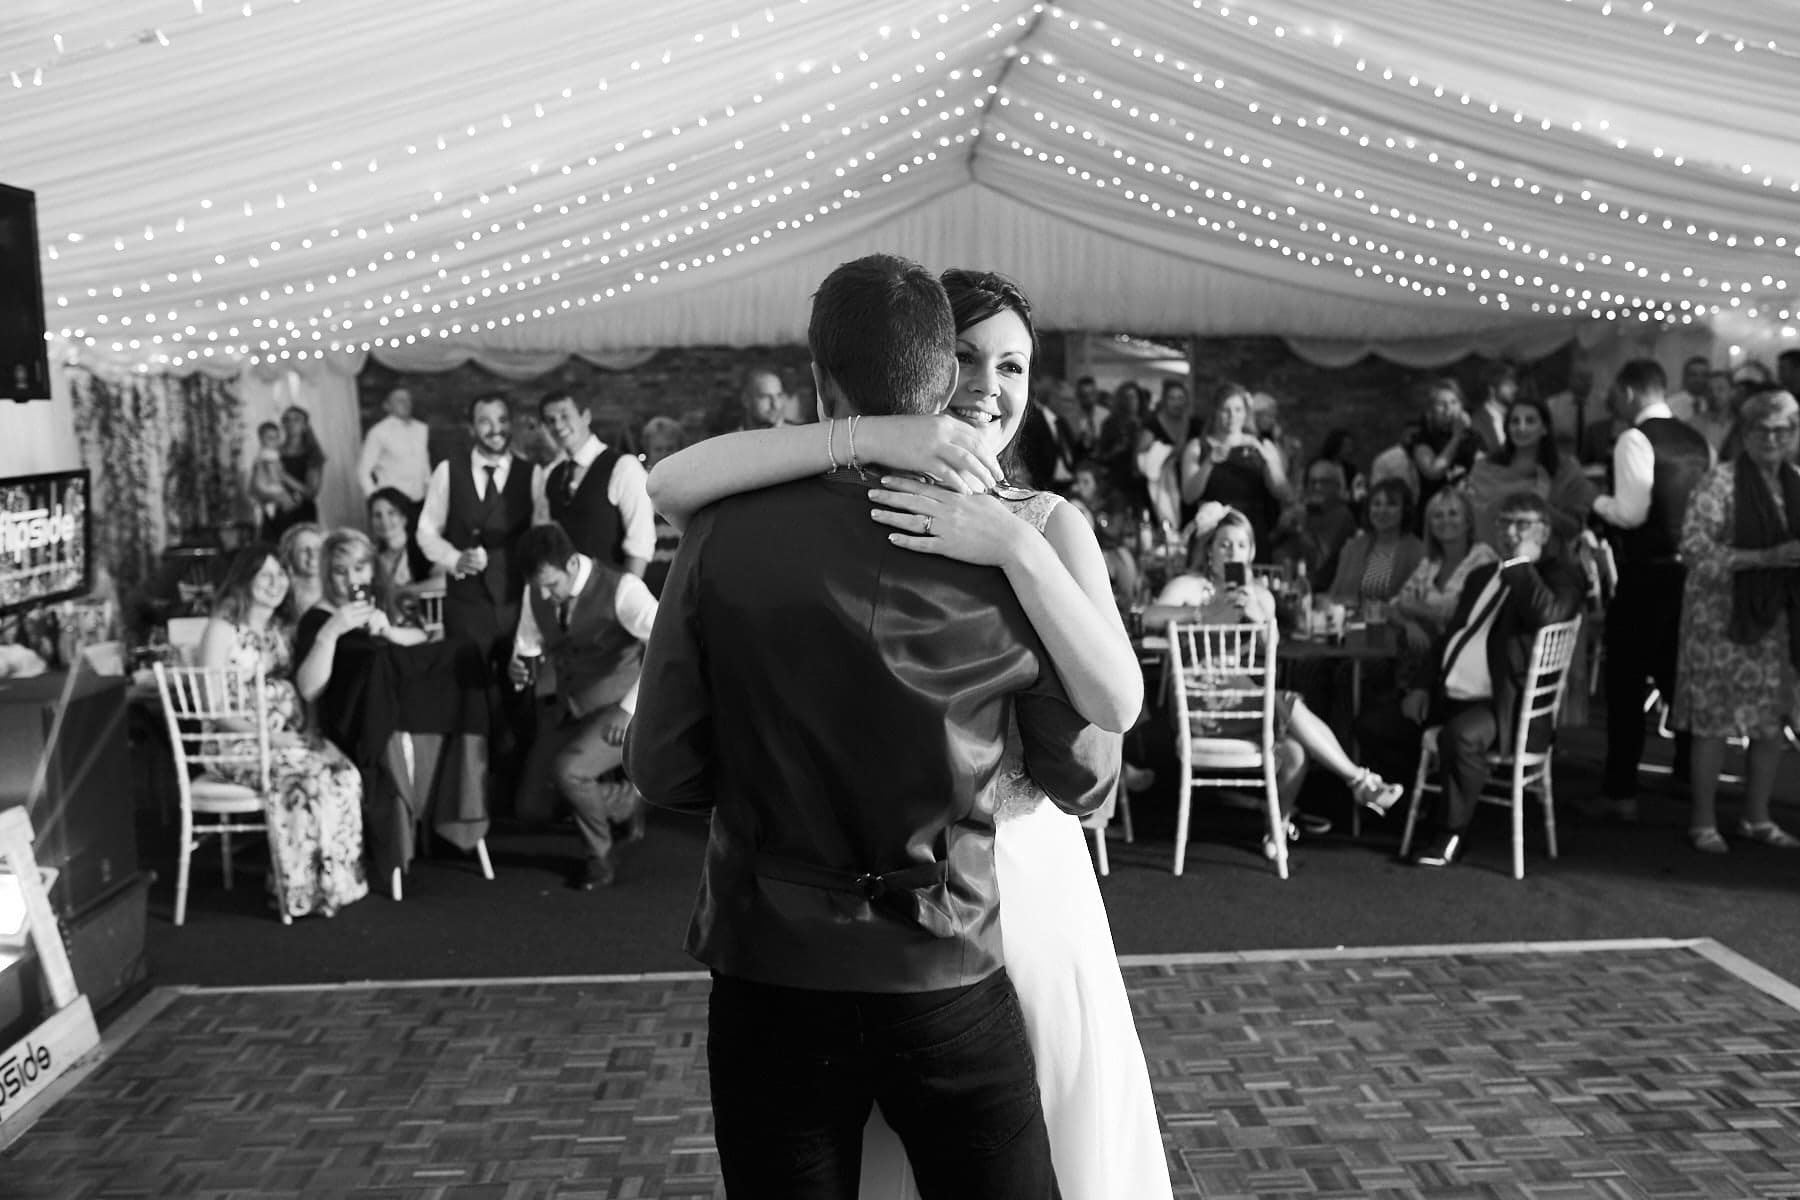 A couple dance on their wedding day with their friends behind near Woodhall Spa. The wedding dance takes place within a marquee